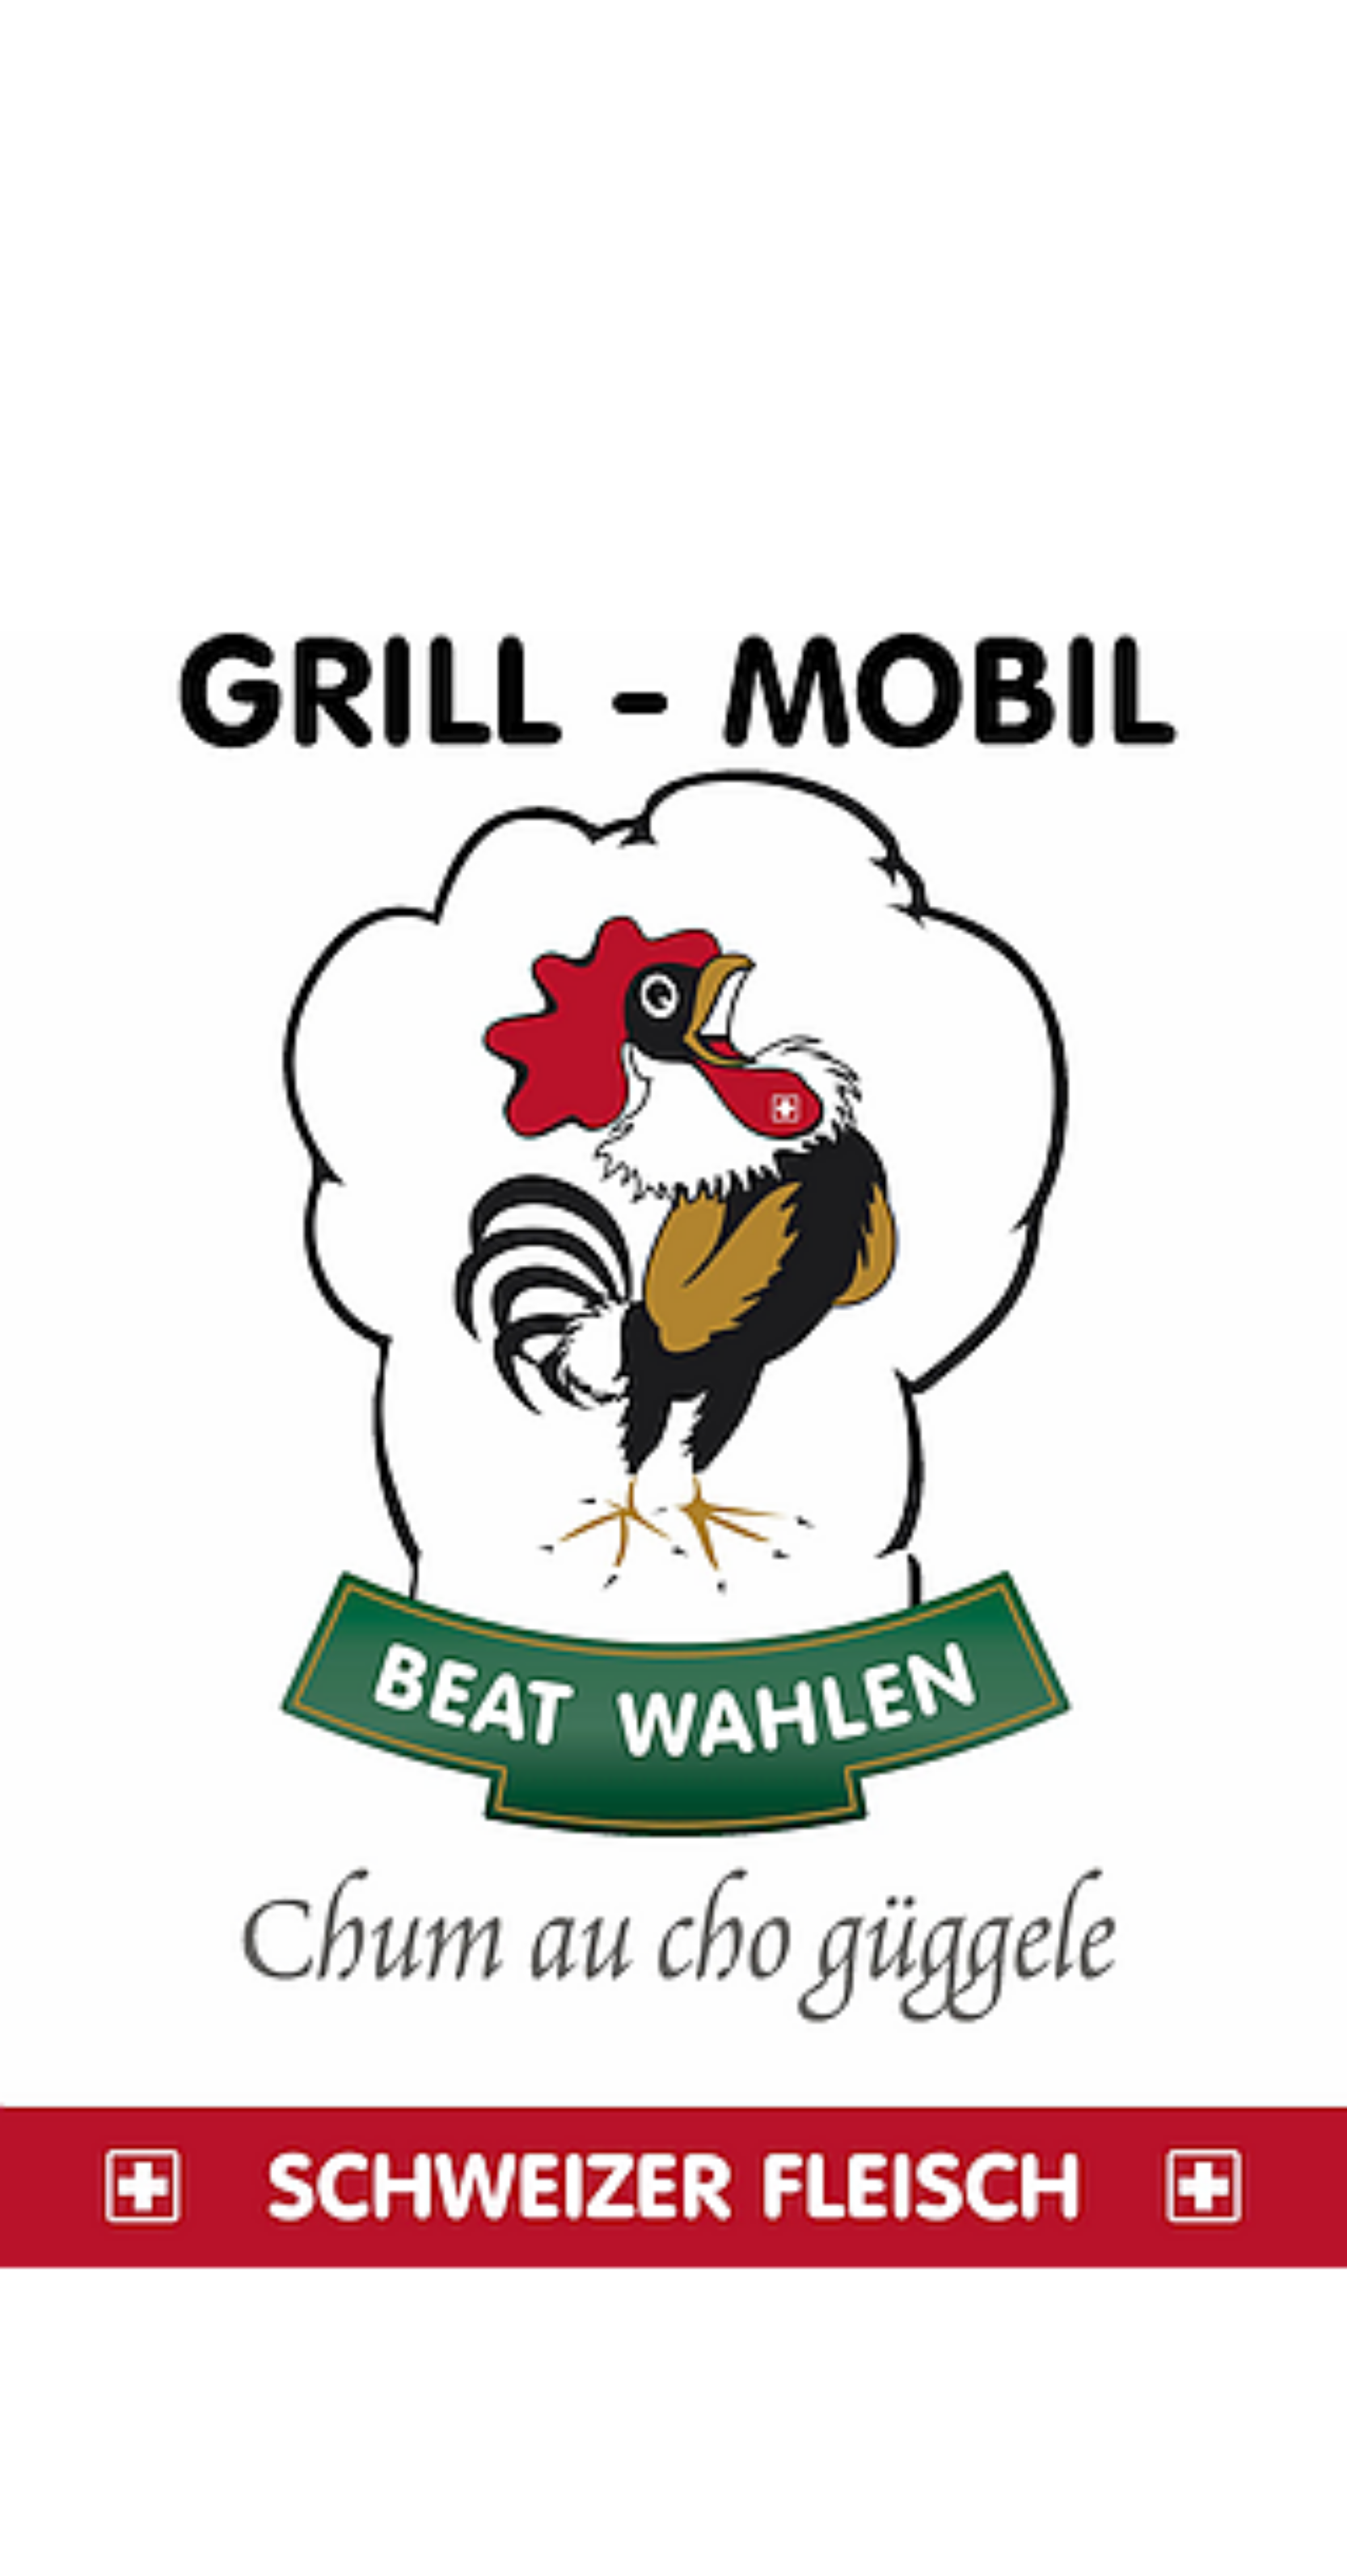 Grill-Mobil